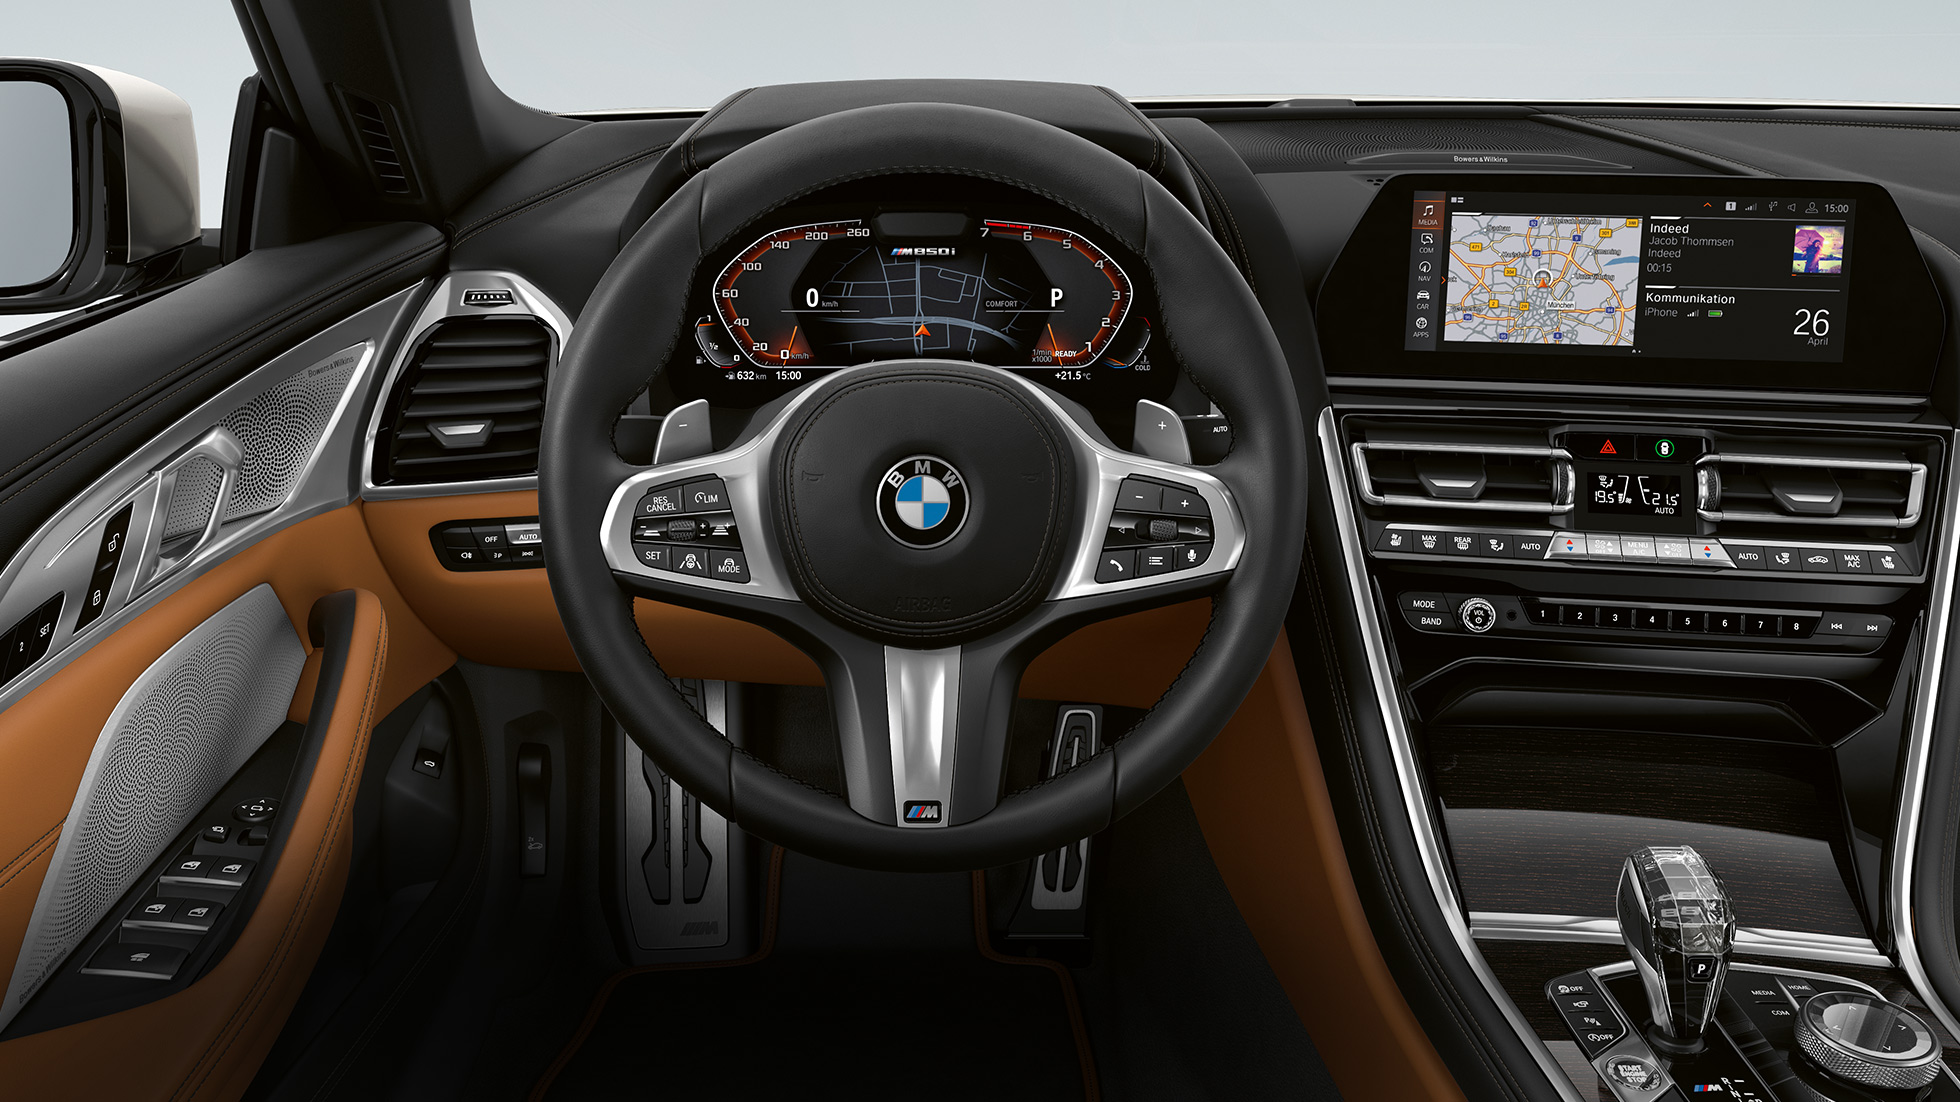 BMW M850i xDrive, M leather steering wheel with shift paddles and multifunction.